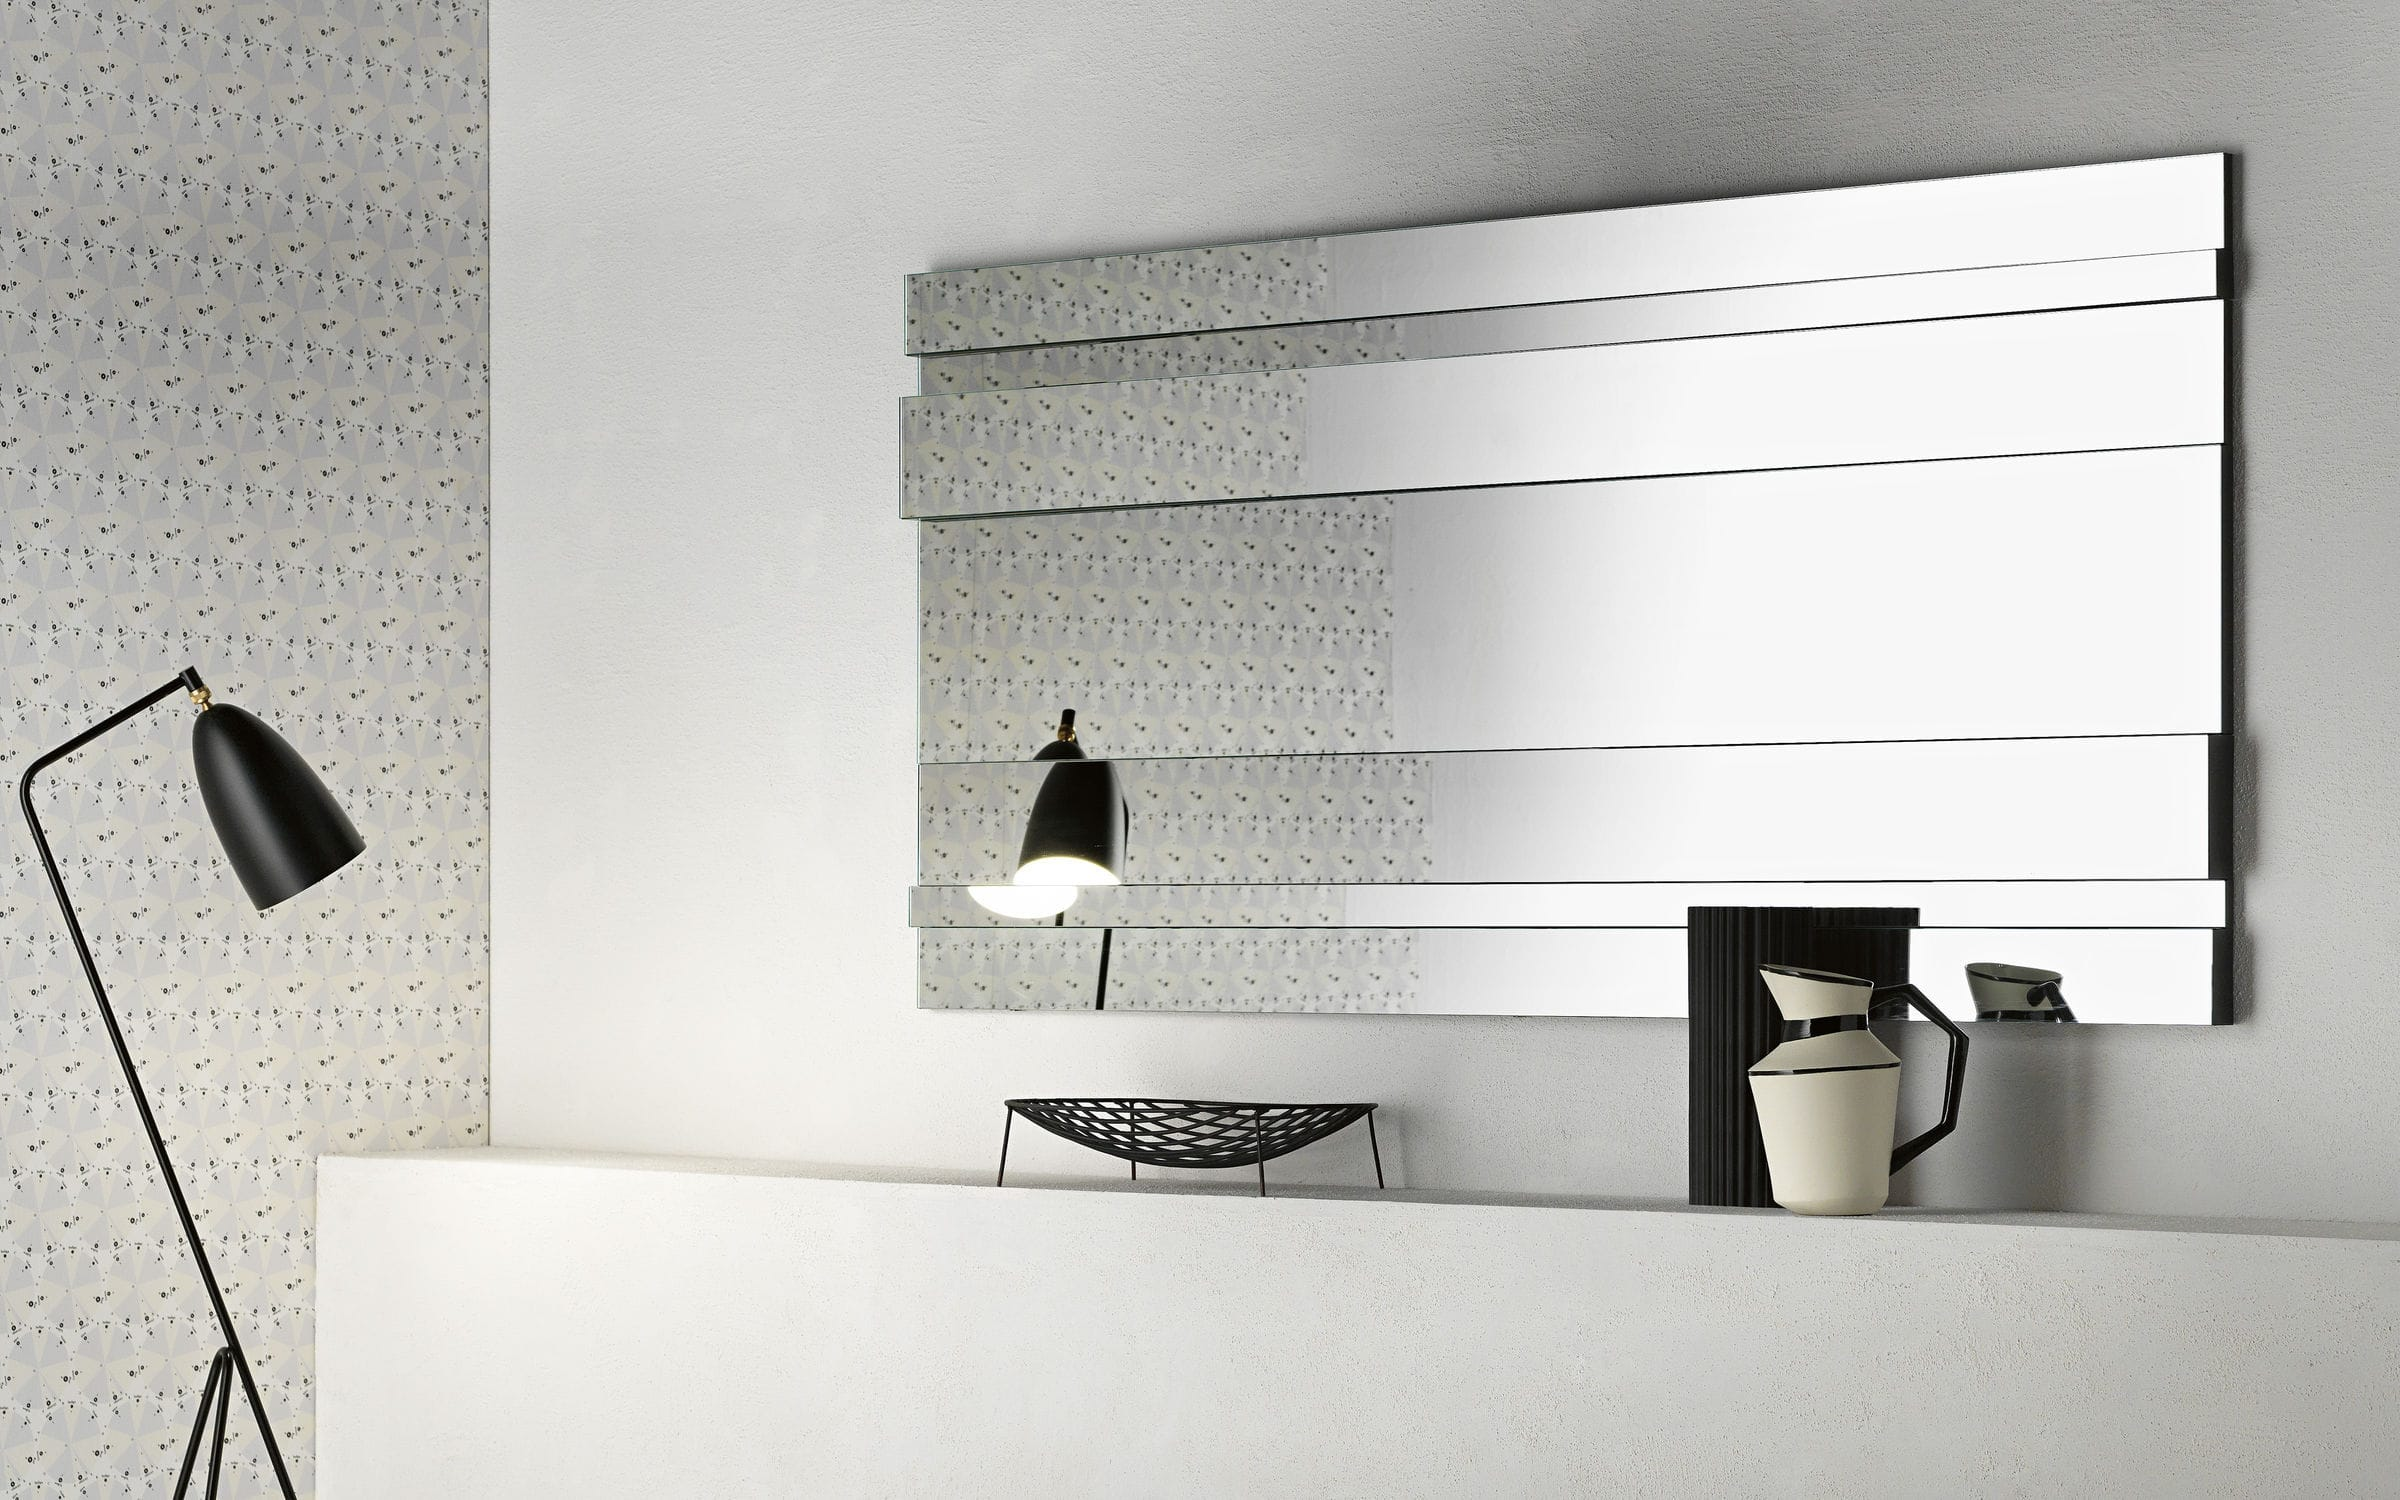 Miroir mural contemporain design